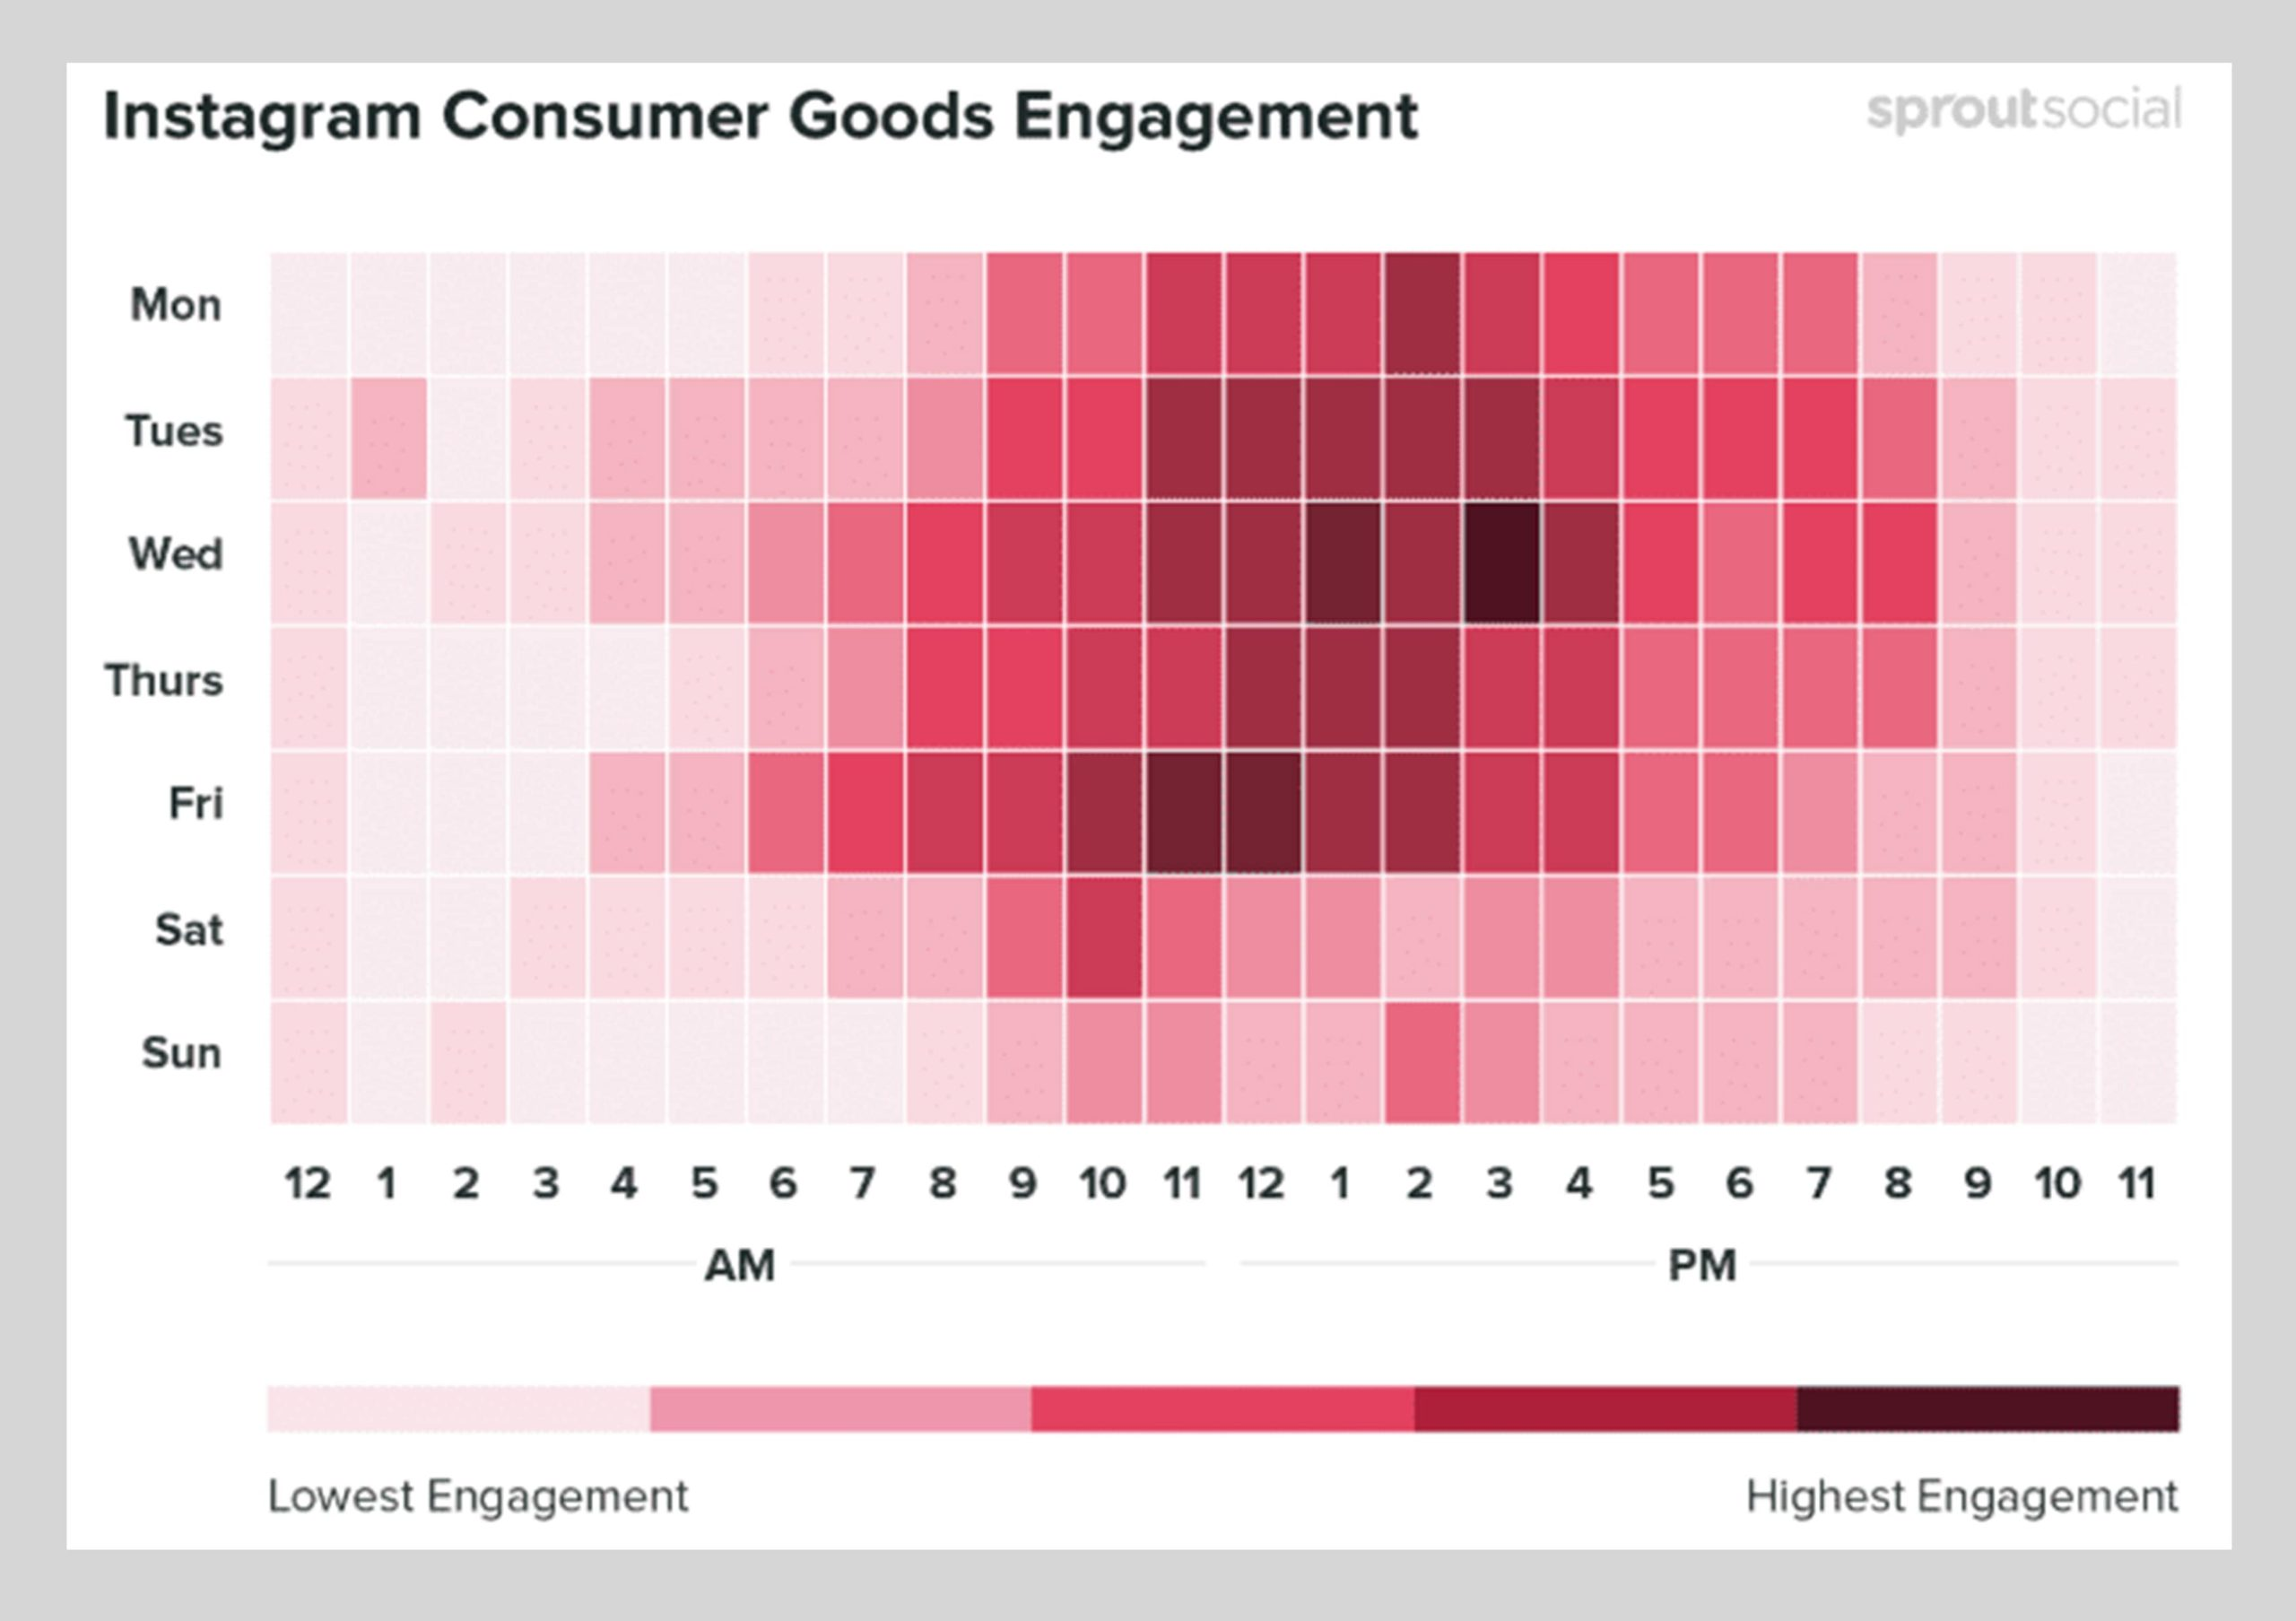 A connected eCommerce experience - Instagram Consumer Goods Engagement